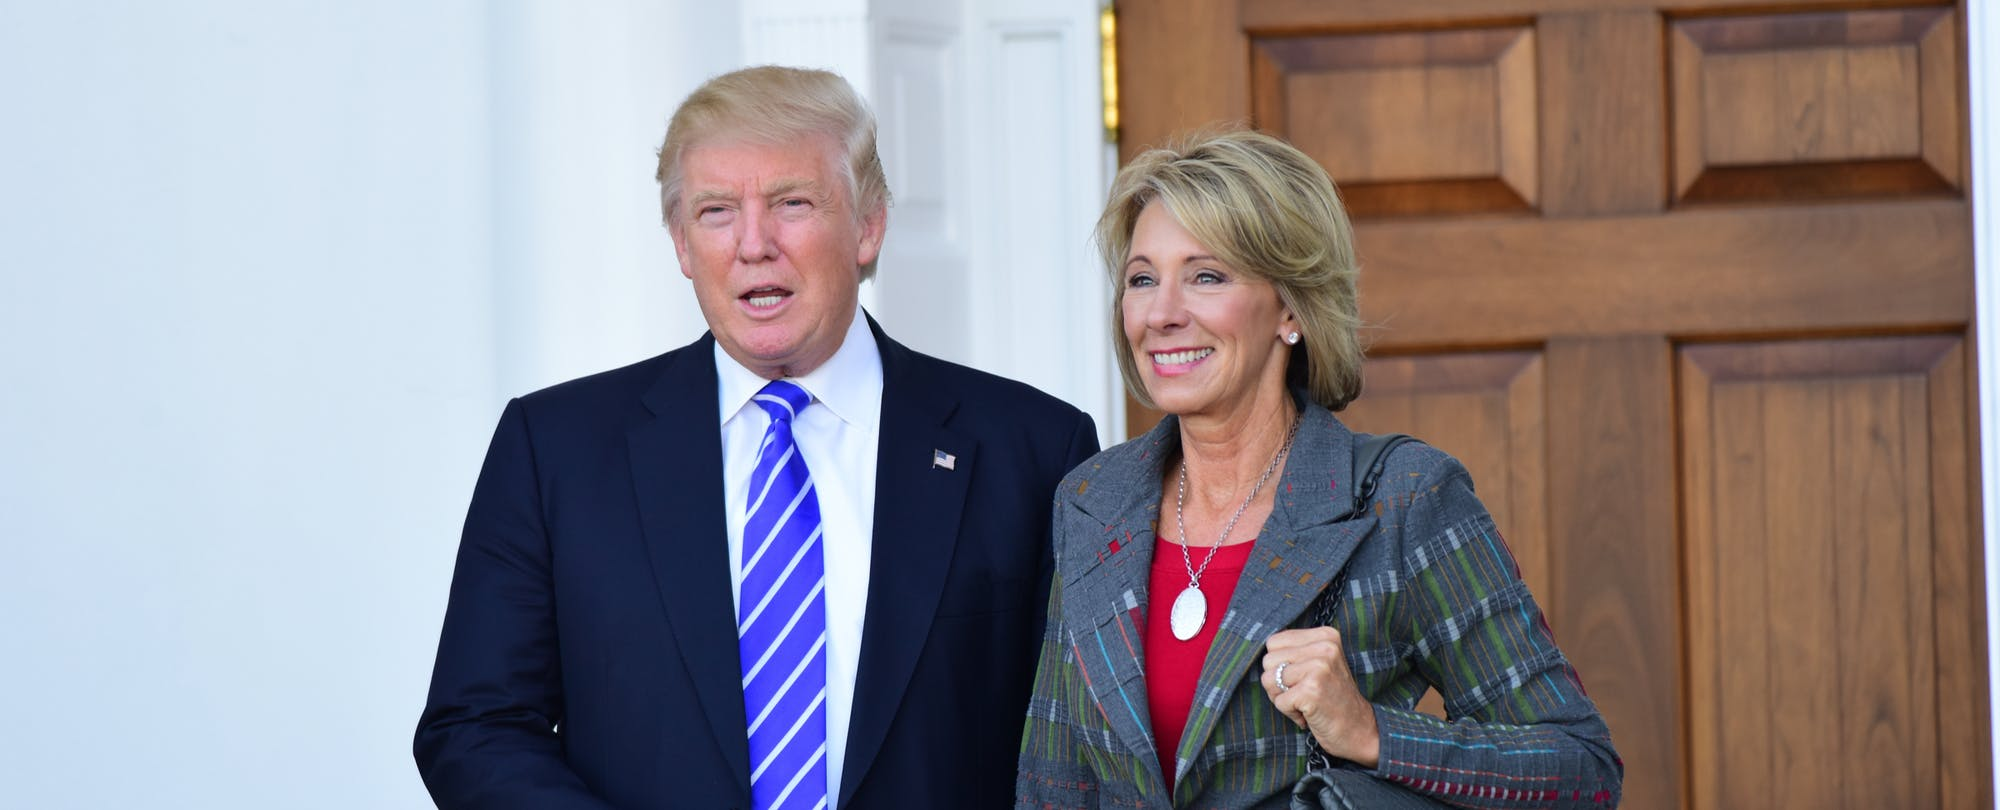 Opinion: With the Fox in the Henhouse, Betsy DeVos's Ed Department Is Hurting Low-Income College Students